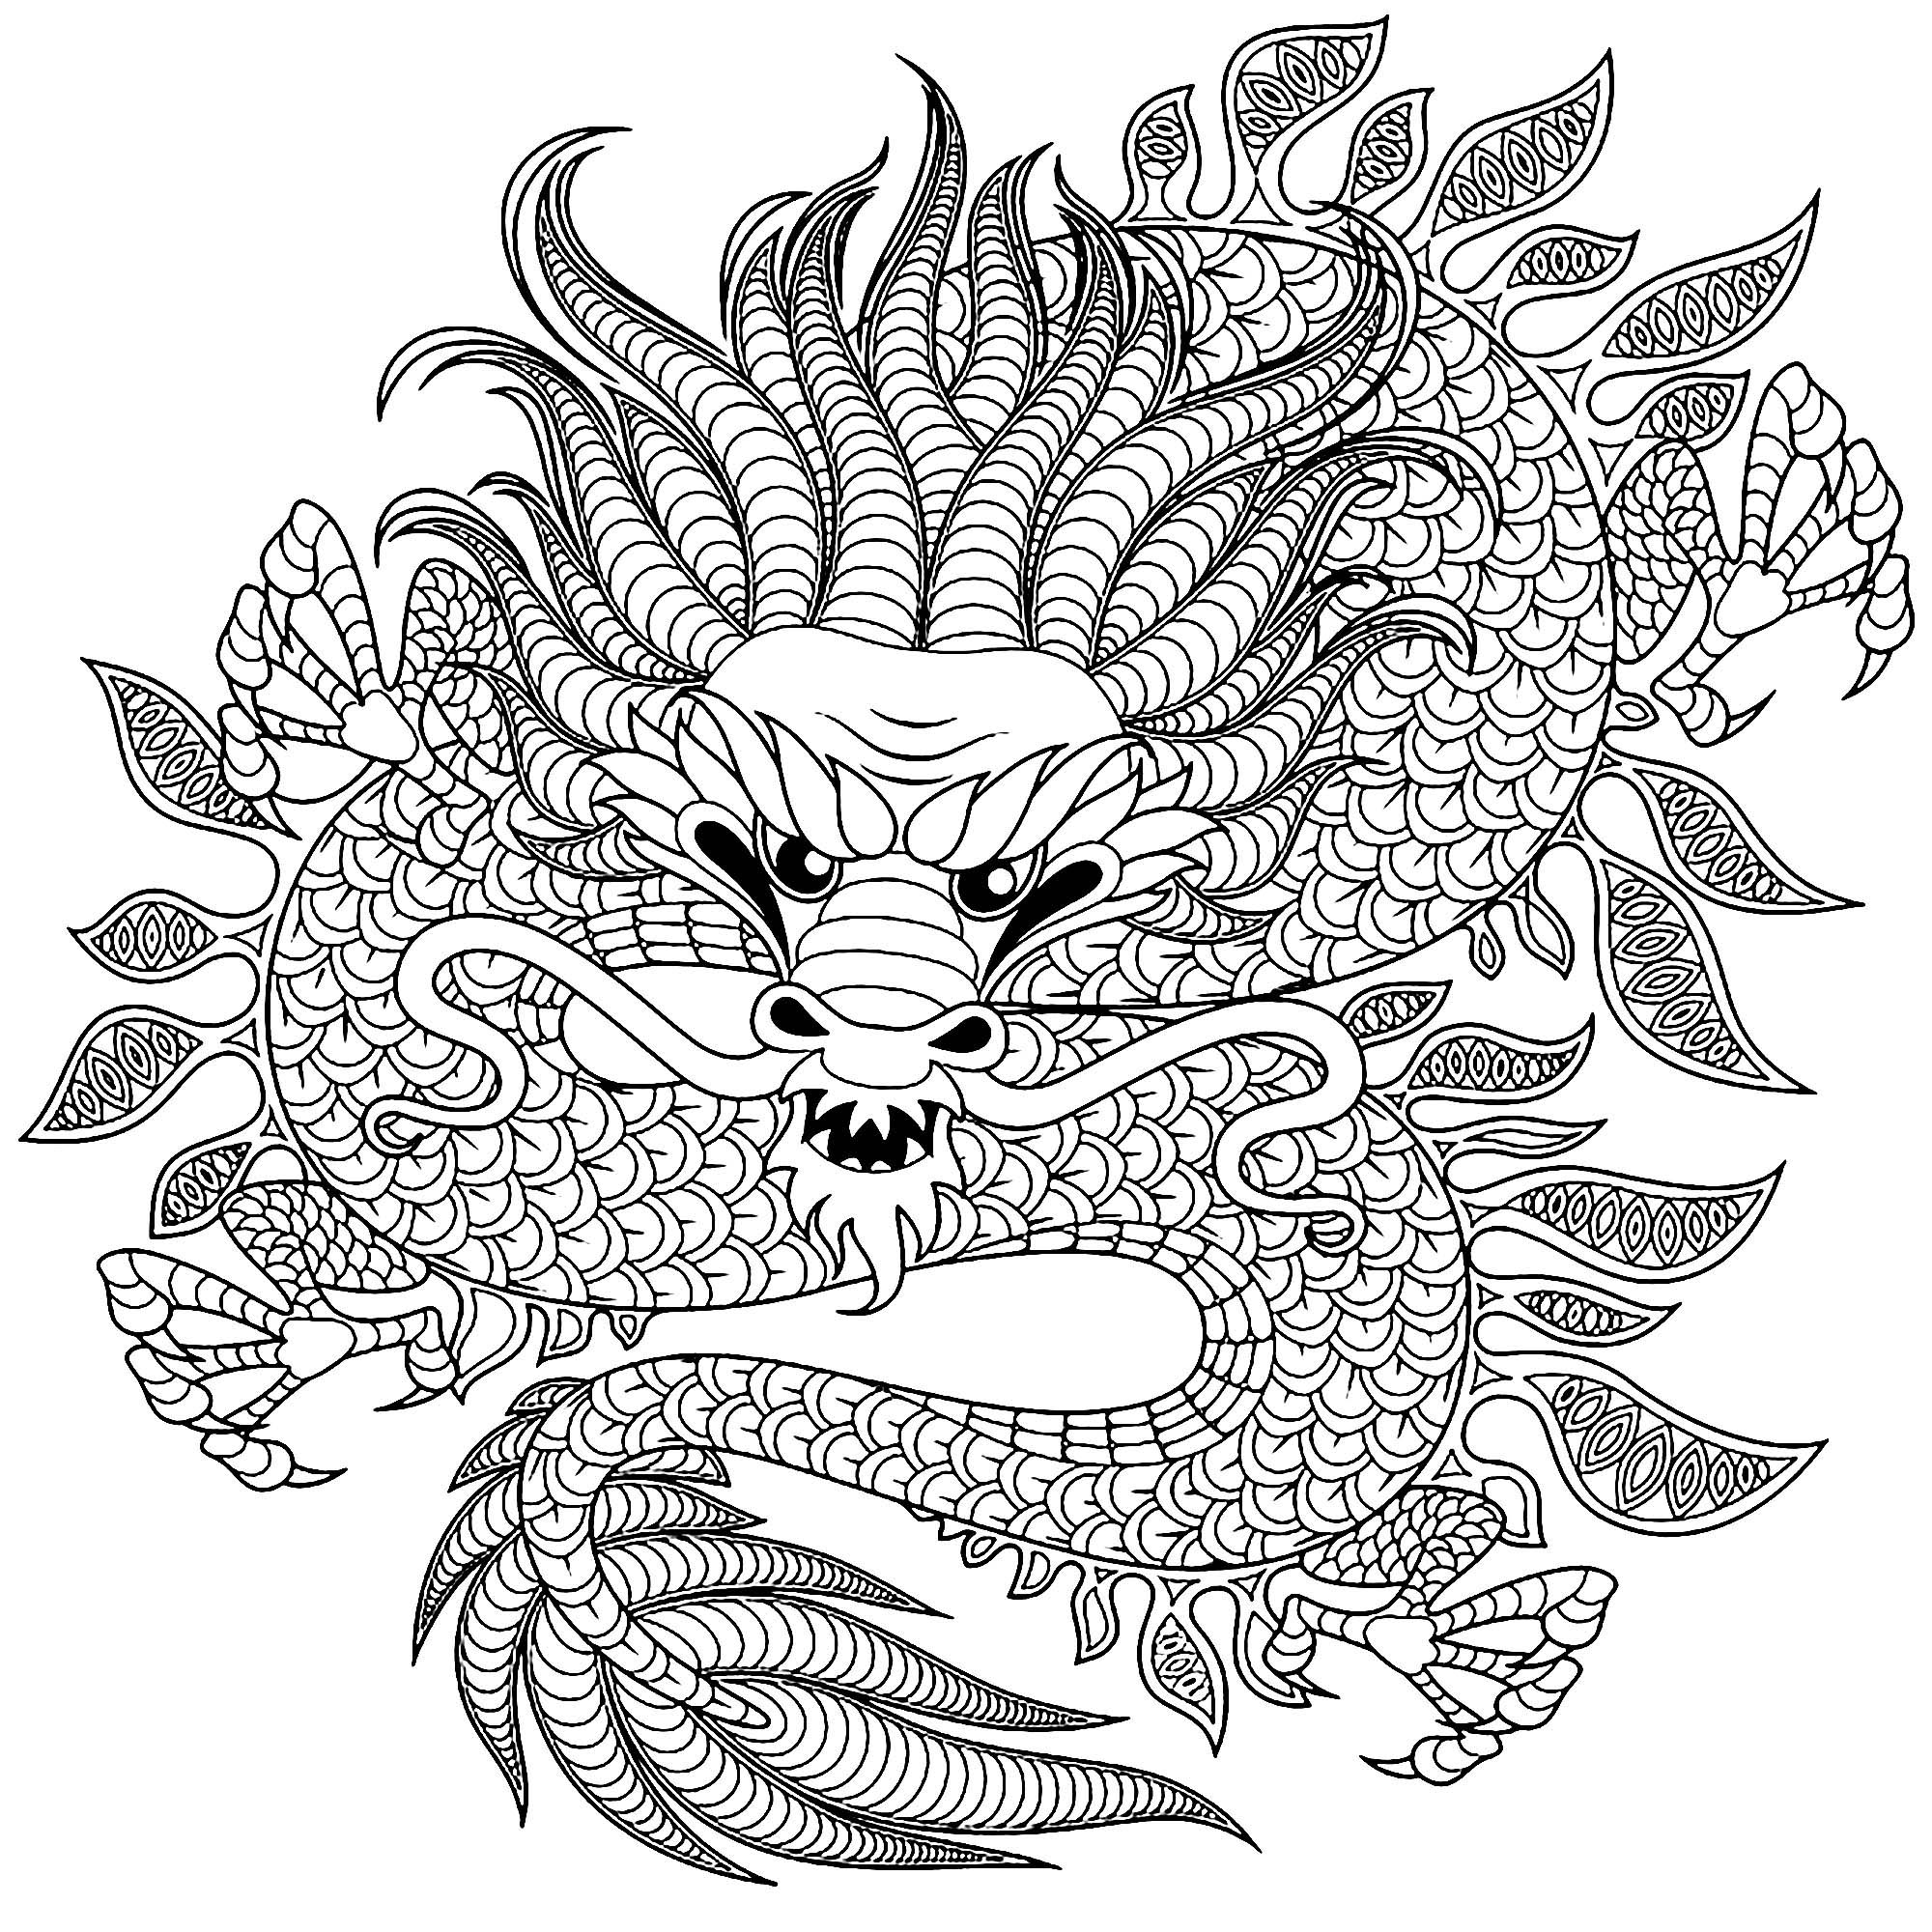 Dragon circulaire dragons coloriages difficiles pour - Coloriages de dragons ...